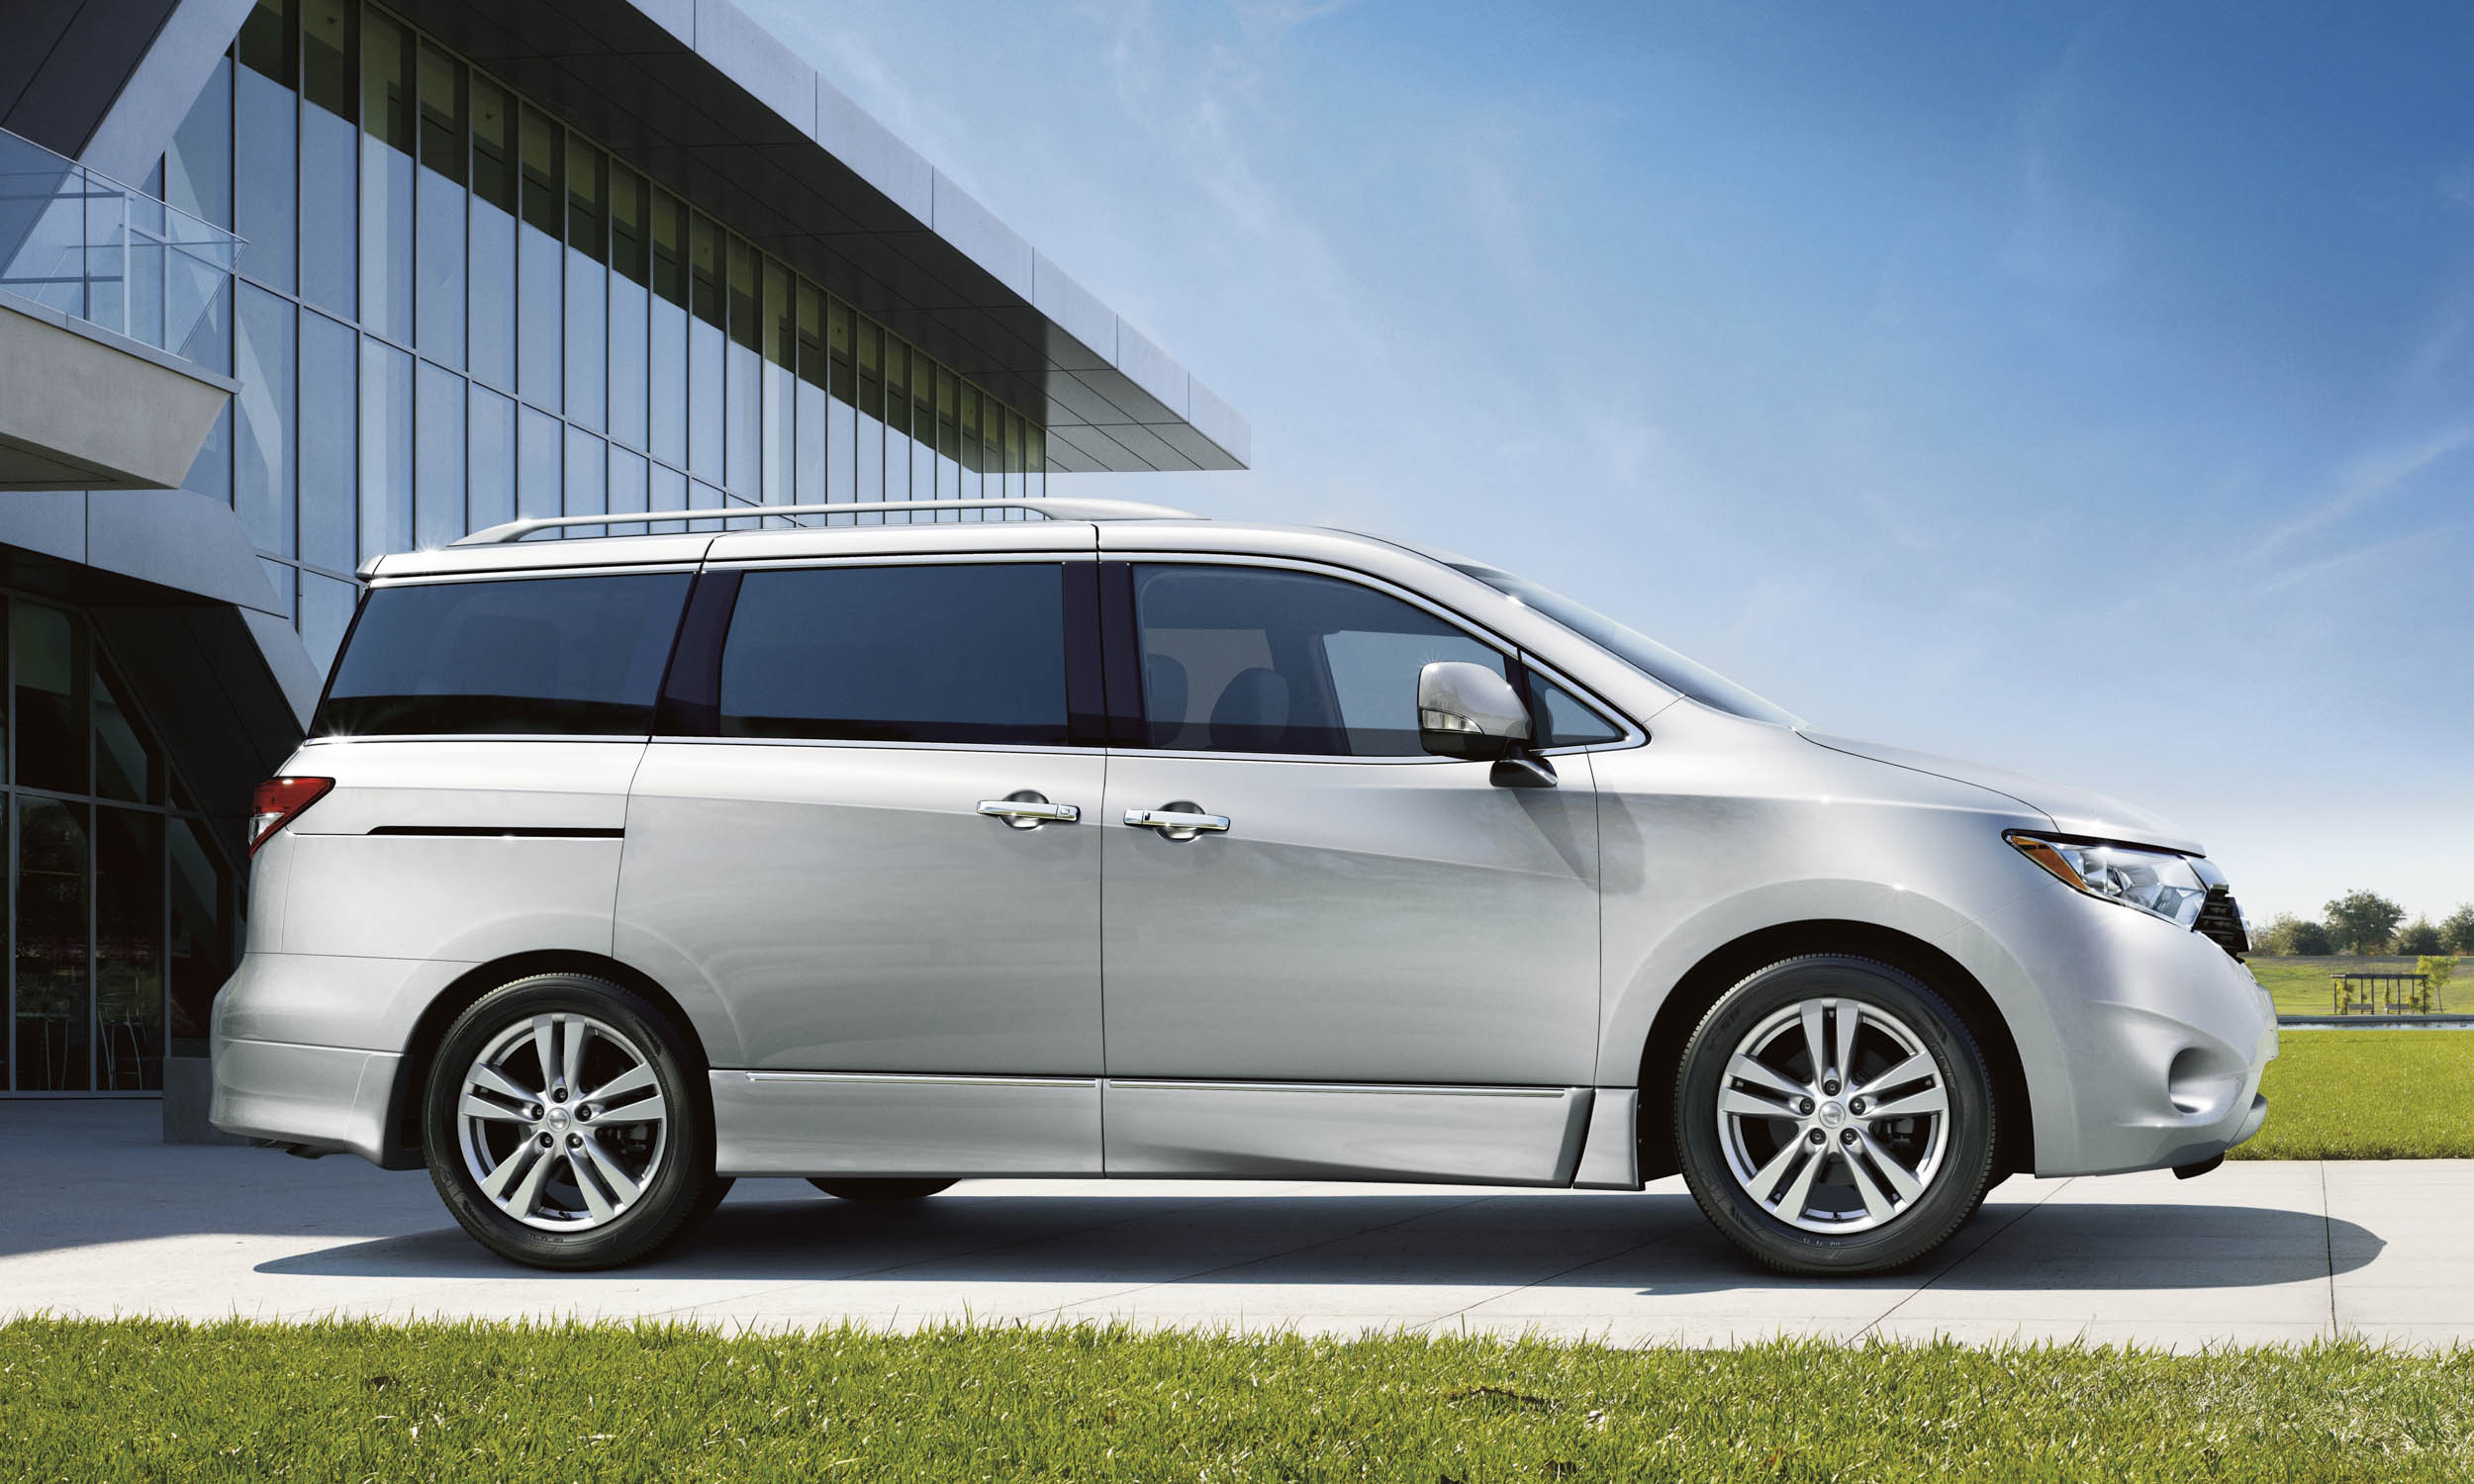 The Nissan Quest are bad used minivans.